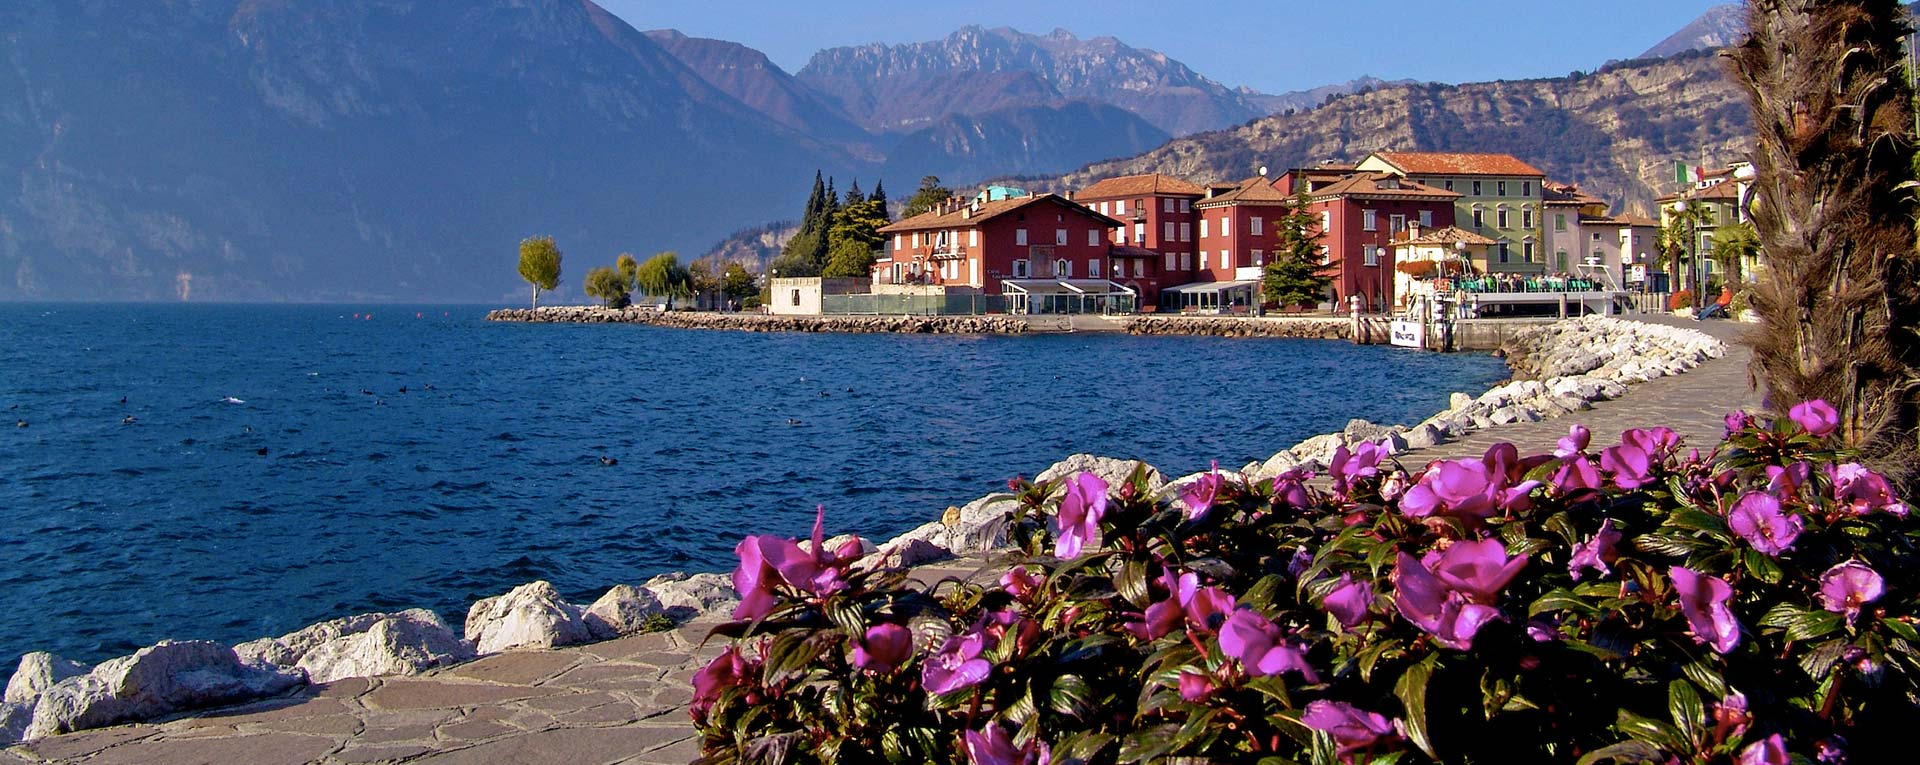 3 things to do in Torbole on Lake Garda at Easter time